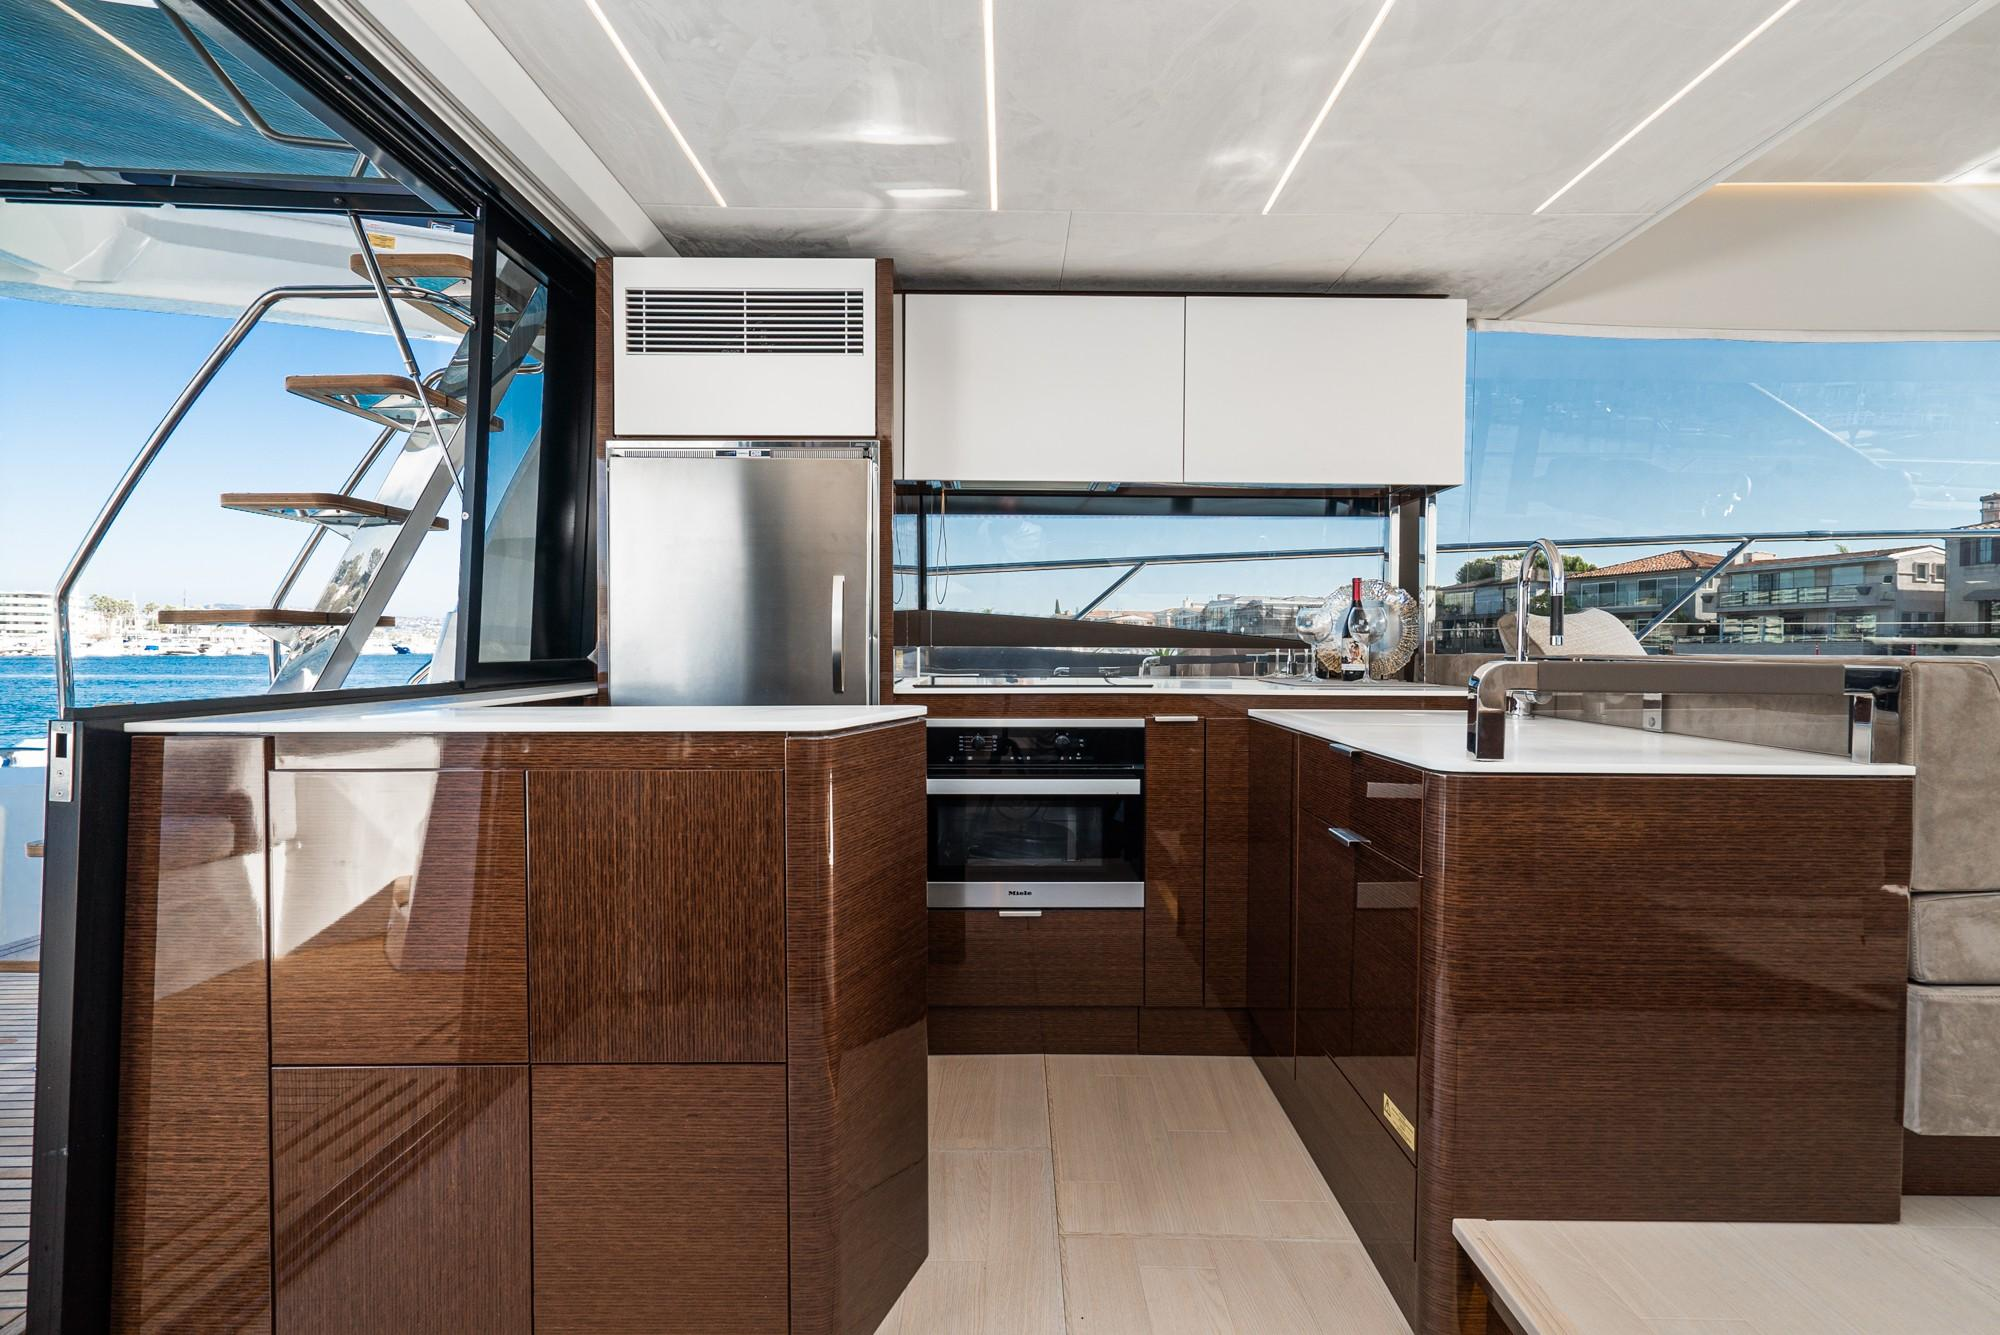 2020 Prestige 590 Fly #PR040L inventory image at Sun Country Coastal in Newport Beach